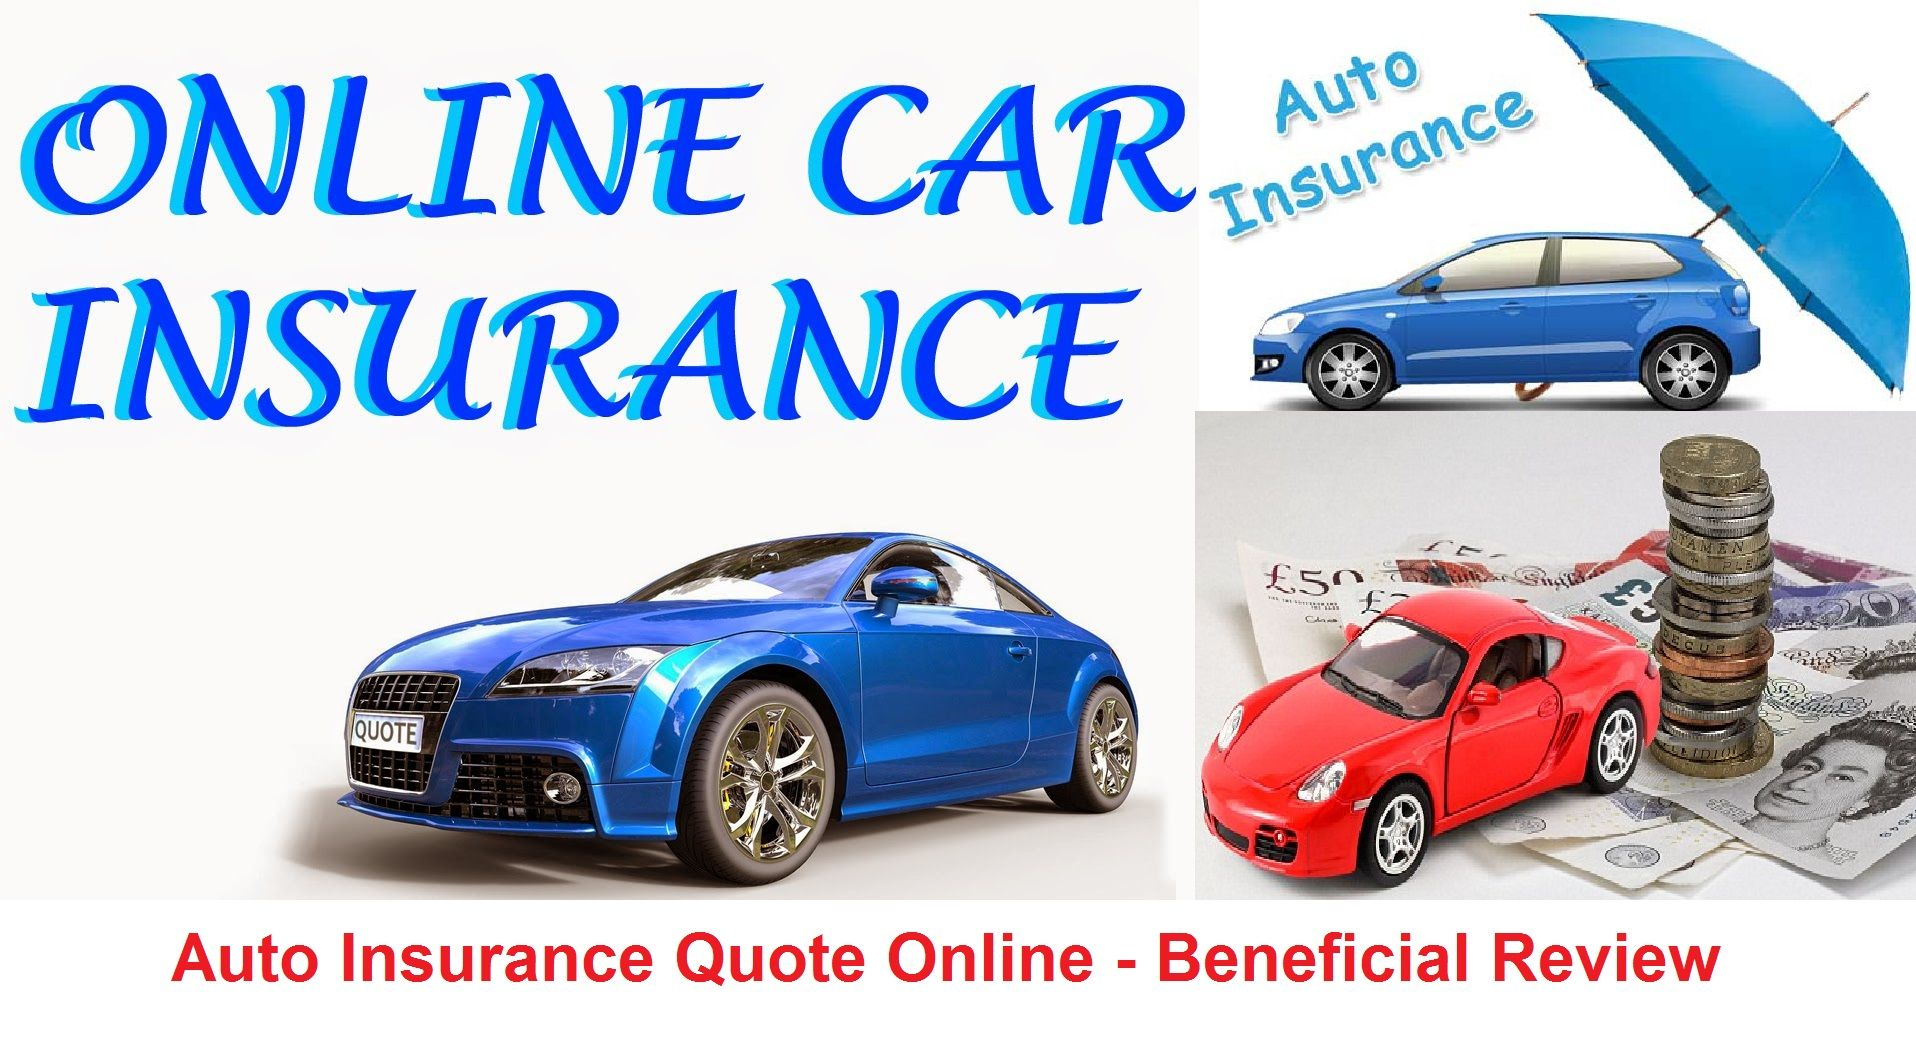 Auto Insurance Quote Online Beneficial Review! Auto